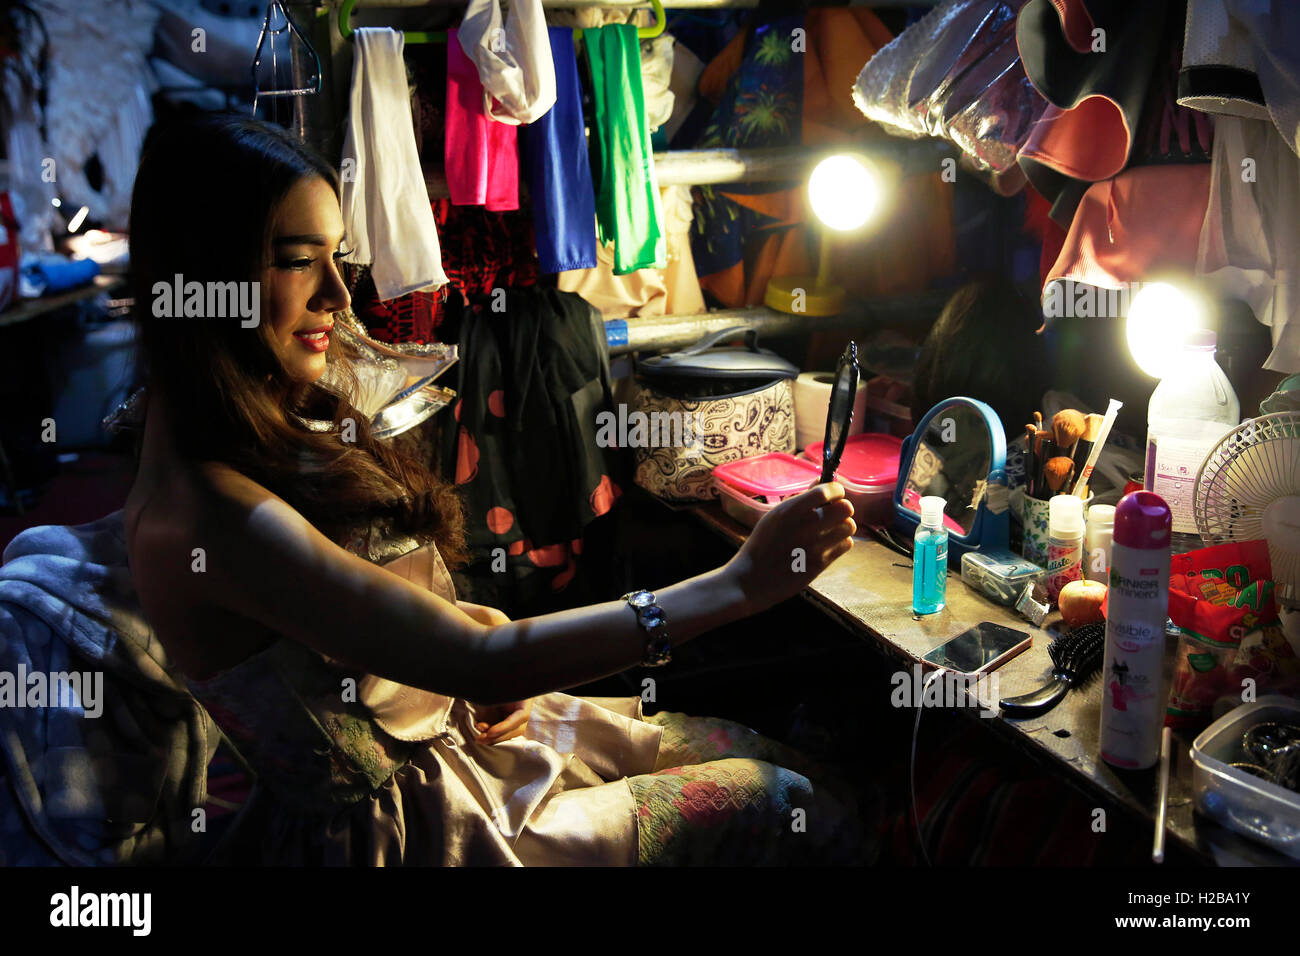 Performer Bombay prepares backstage before the 'Lady Boys of Bangkok' stage show the 'Beauties and the - Stock Image